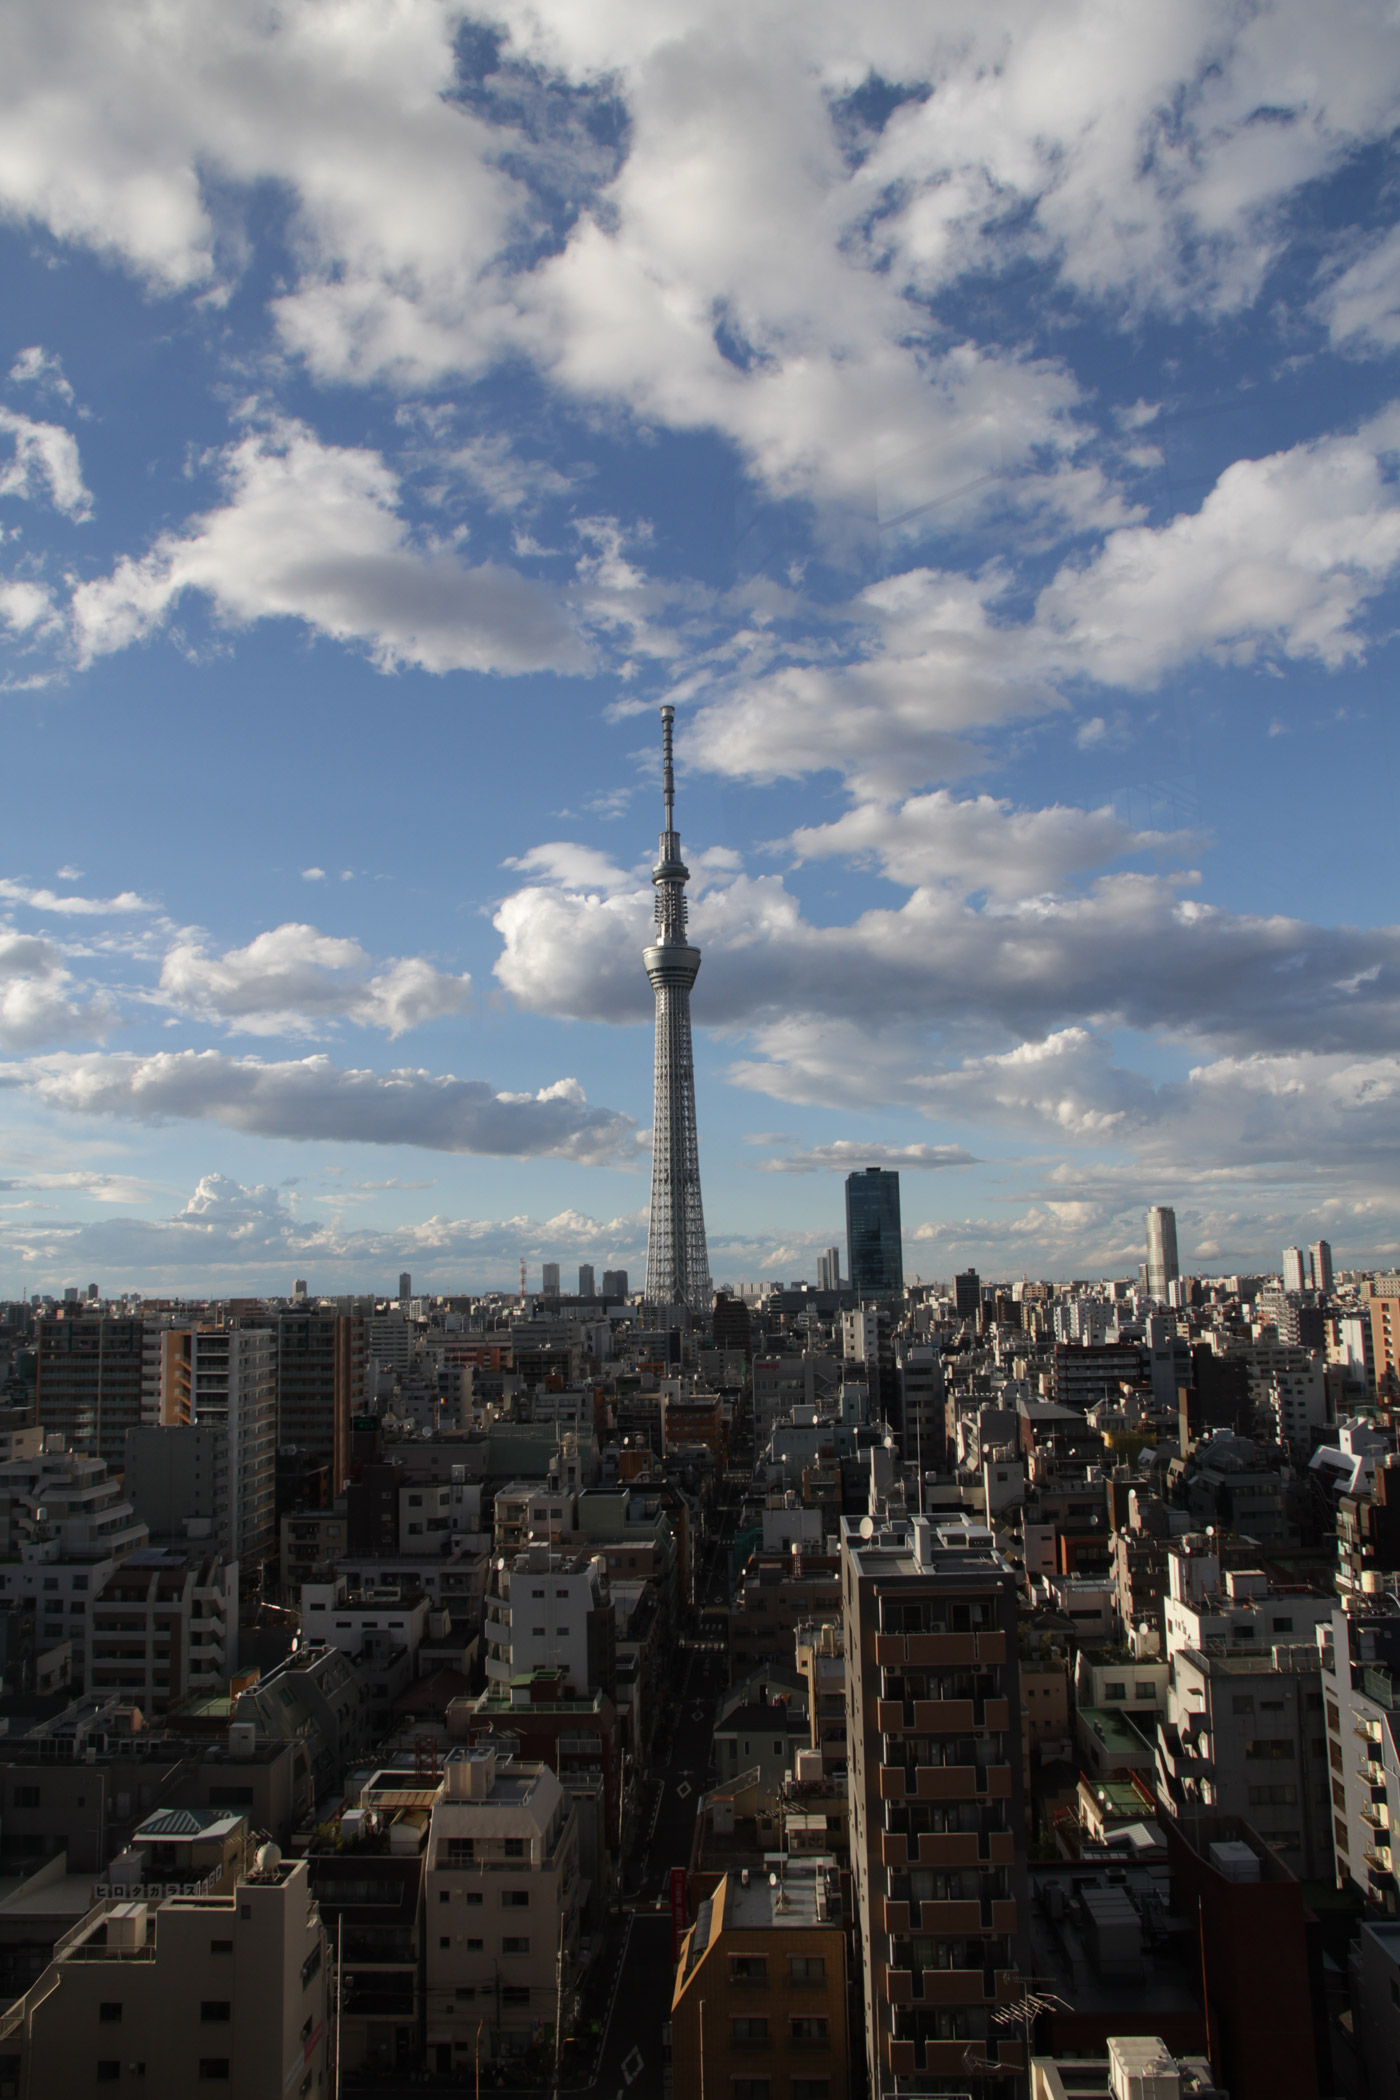 the scenery of Tokyo